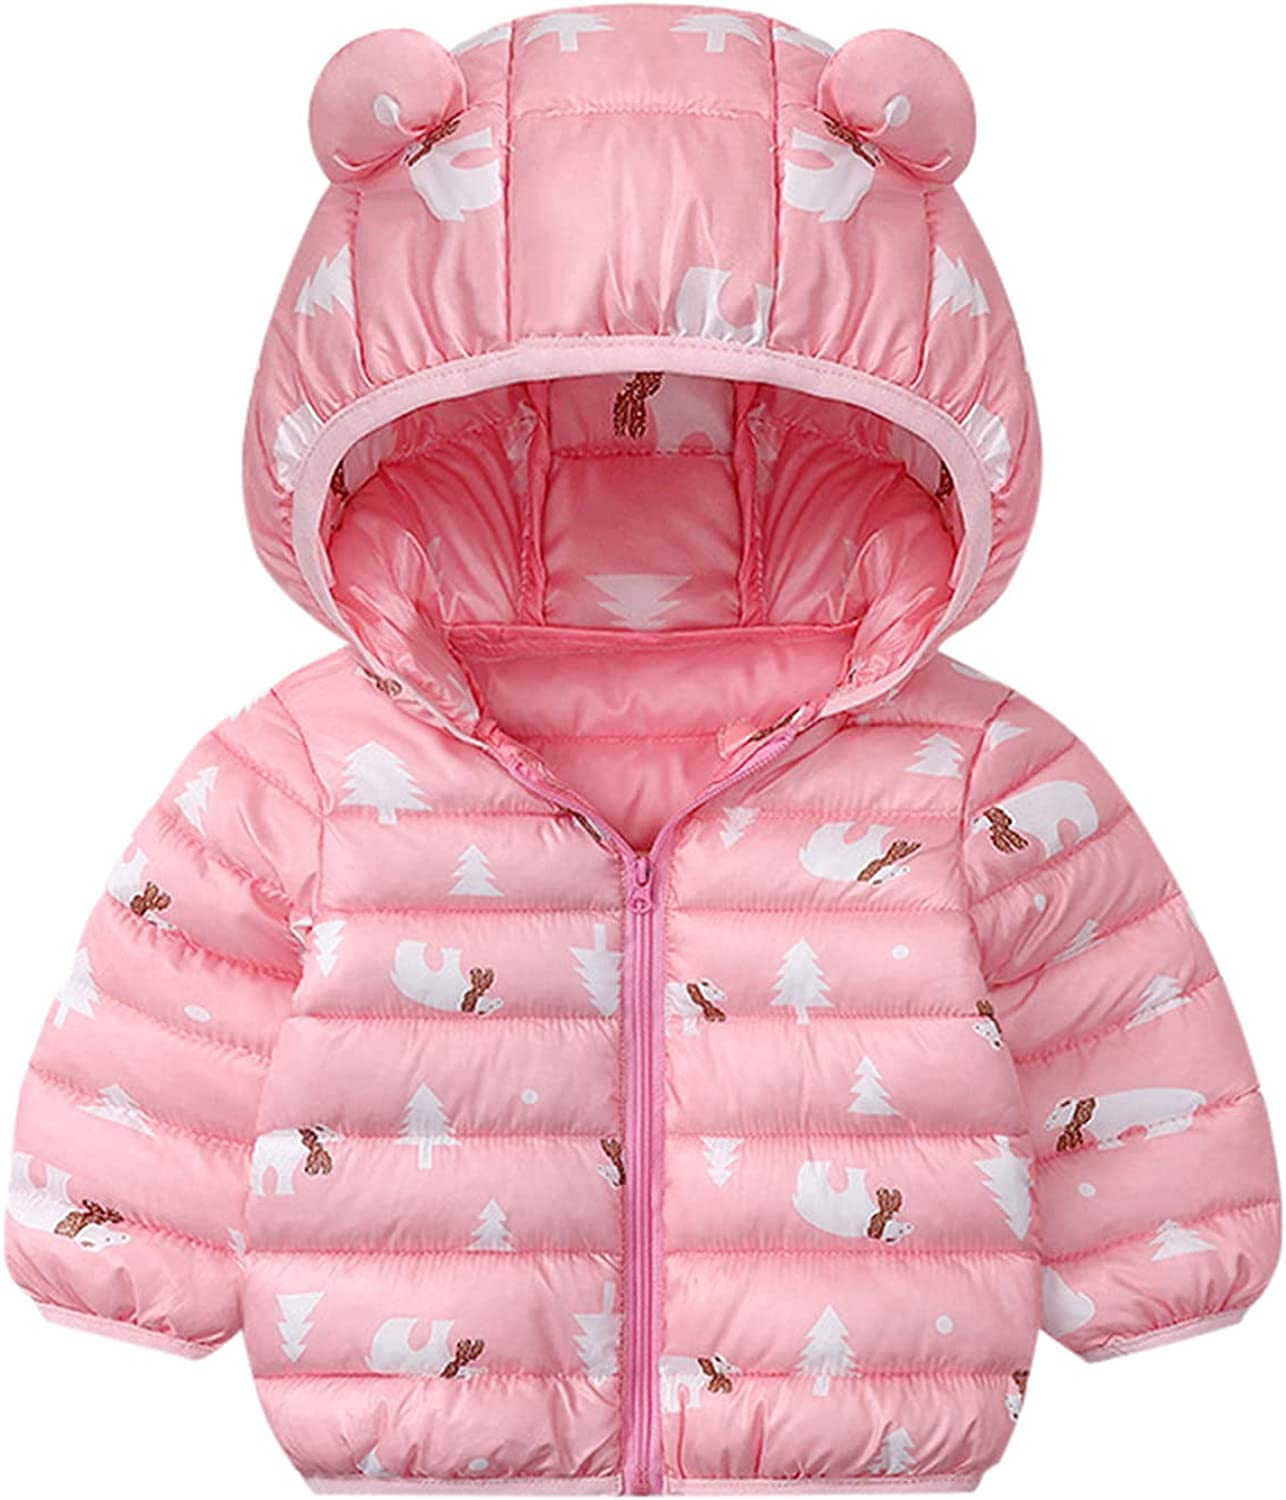 Grils Boys Winter Windproof Coat Hooded Warm Outerwear Jacket Zipper Up Jacket Coat Tops with Lined Overcoat Down Parkas